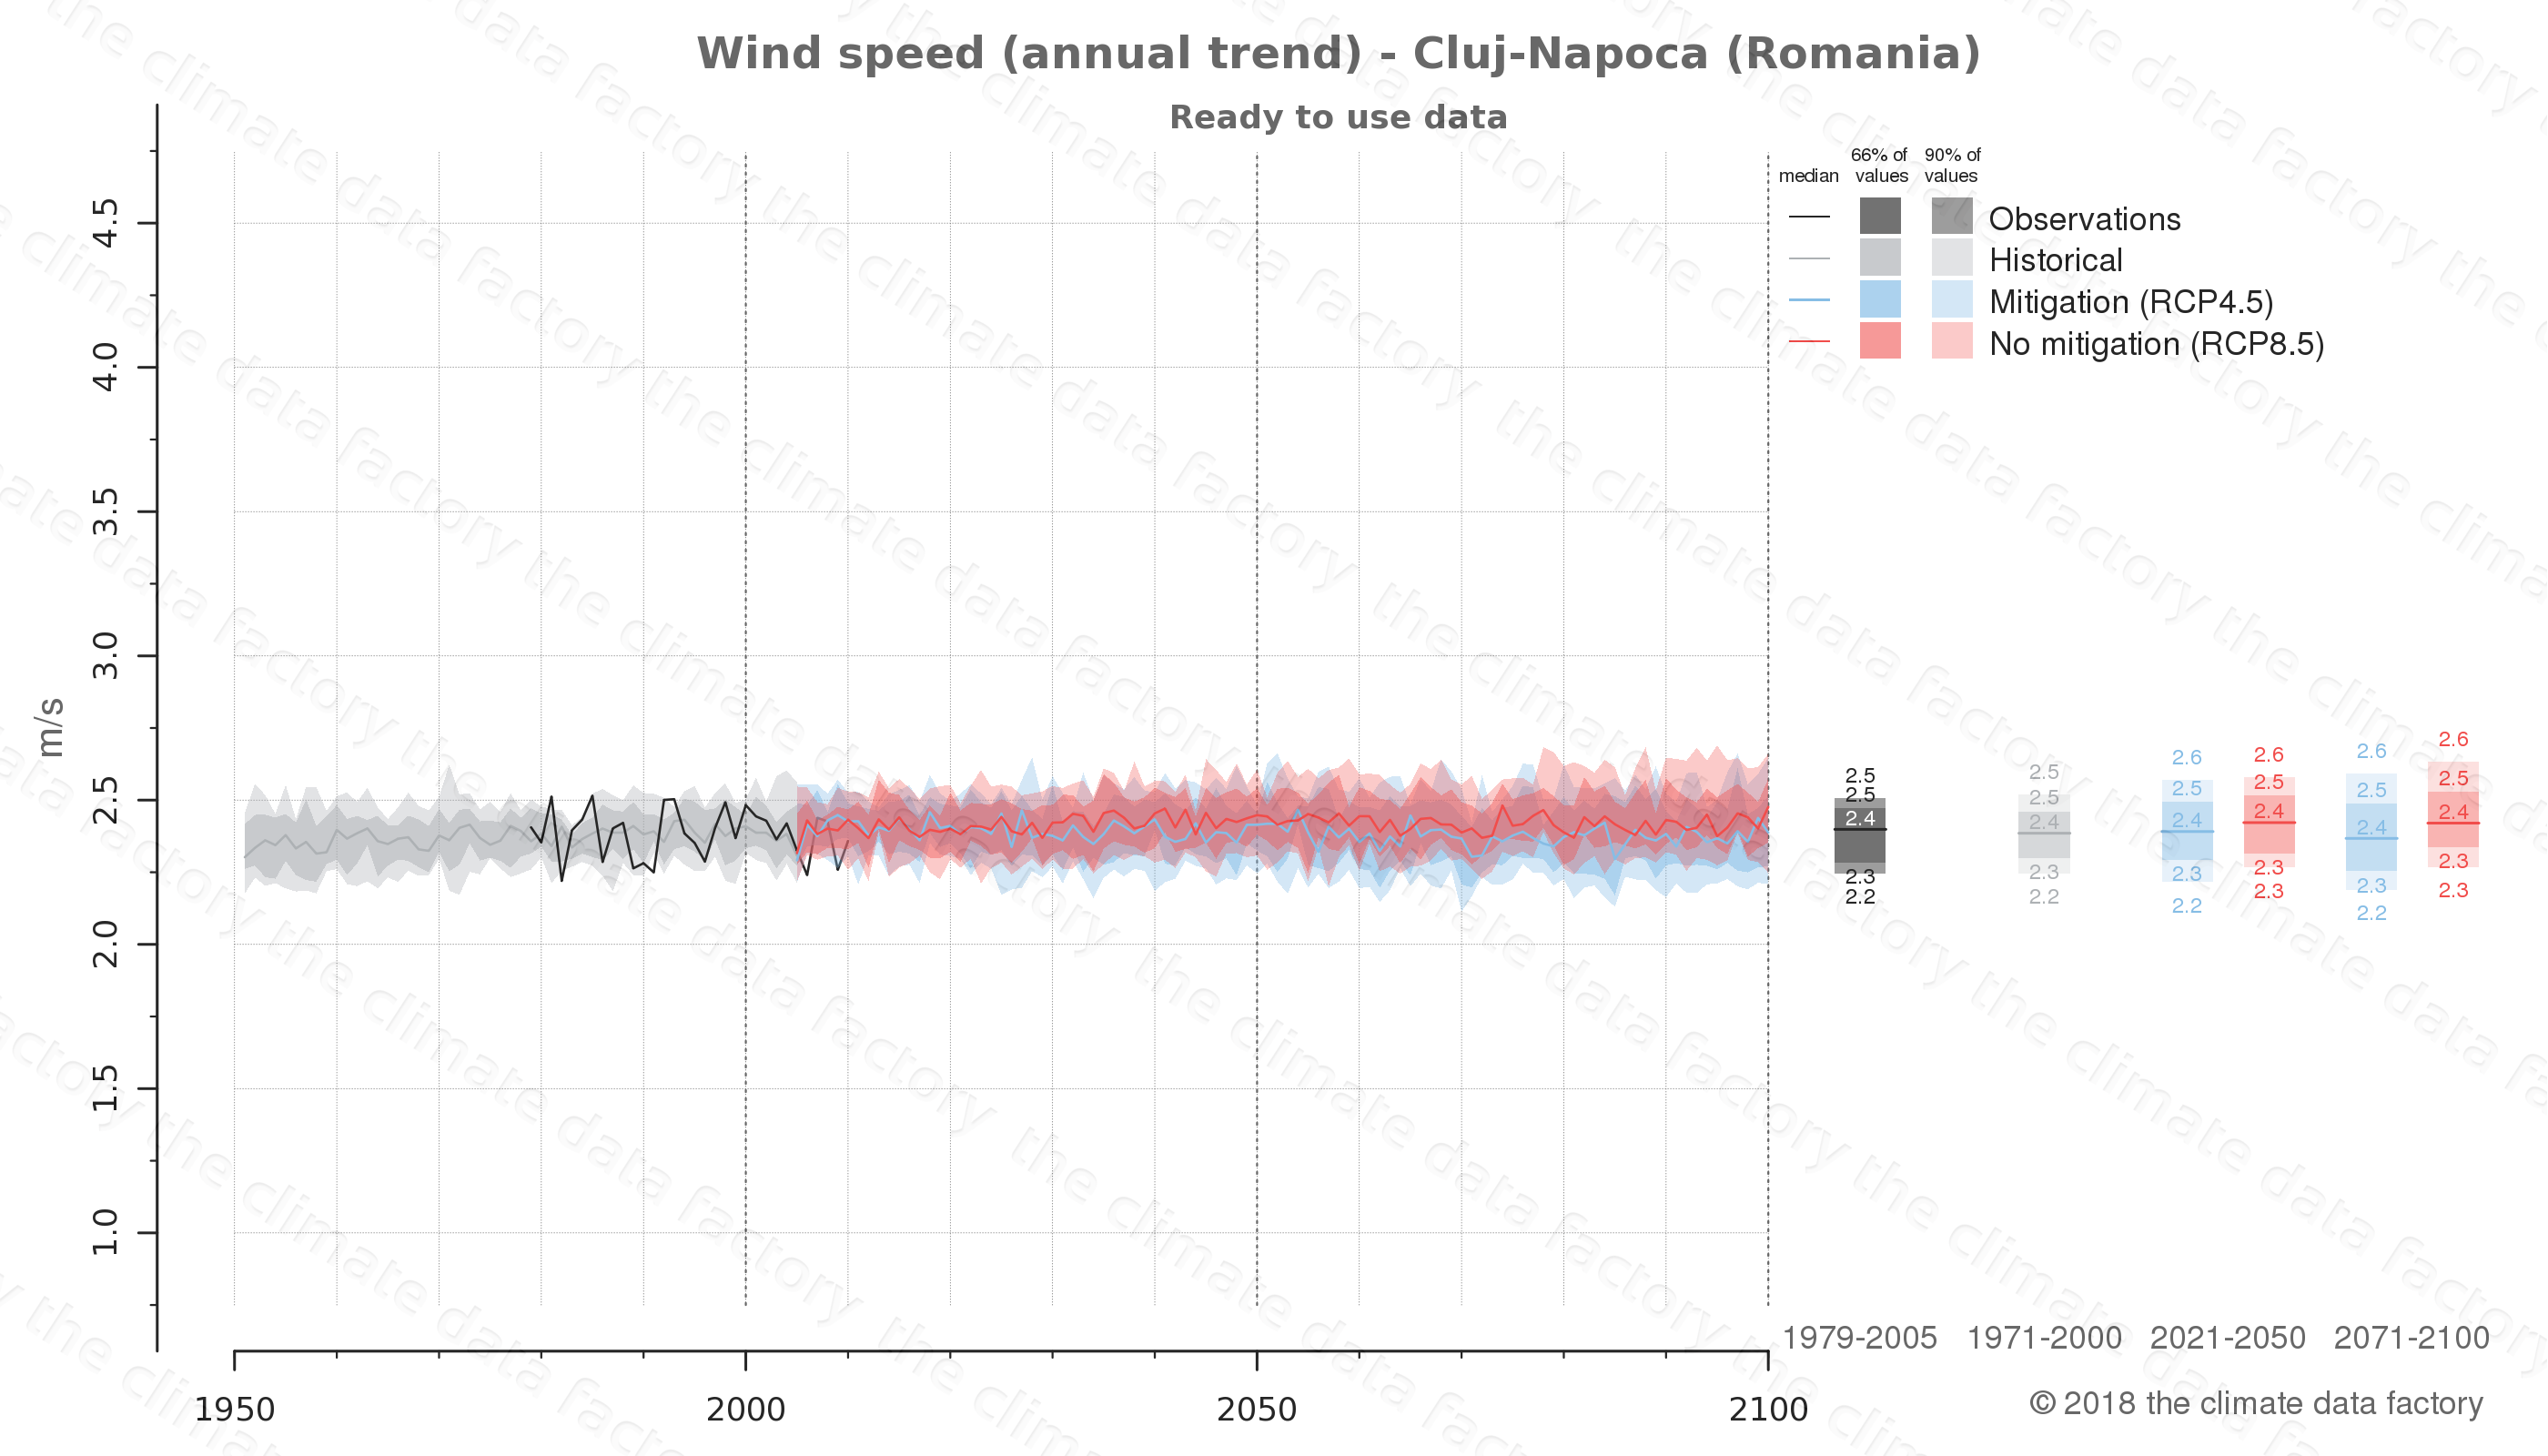 climate change data policy adaptation climate graph city data wind-speed cluj-napoca romania